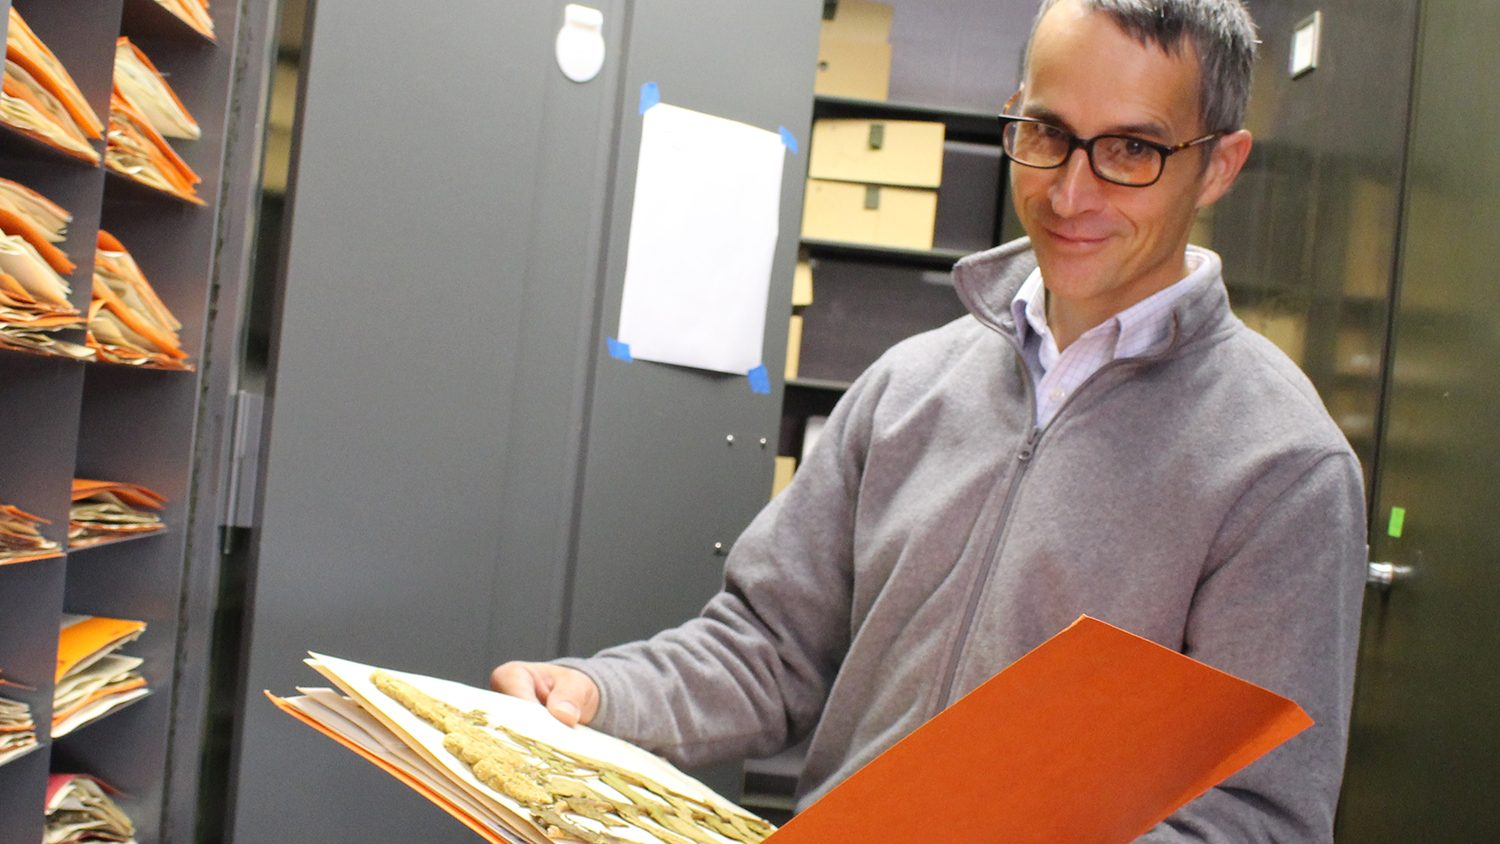 Dr. Alexander Krings holds a folder containing one of the Vascular Plant Herbarium's plant specimens.